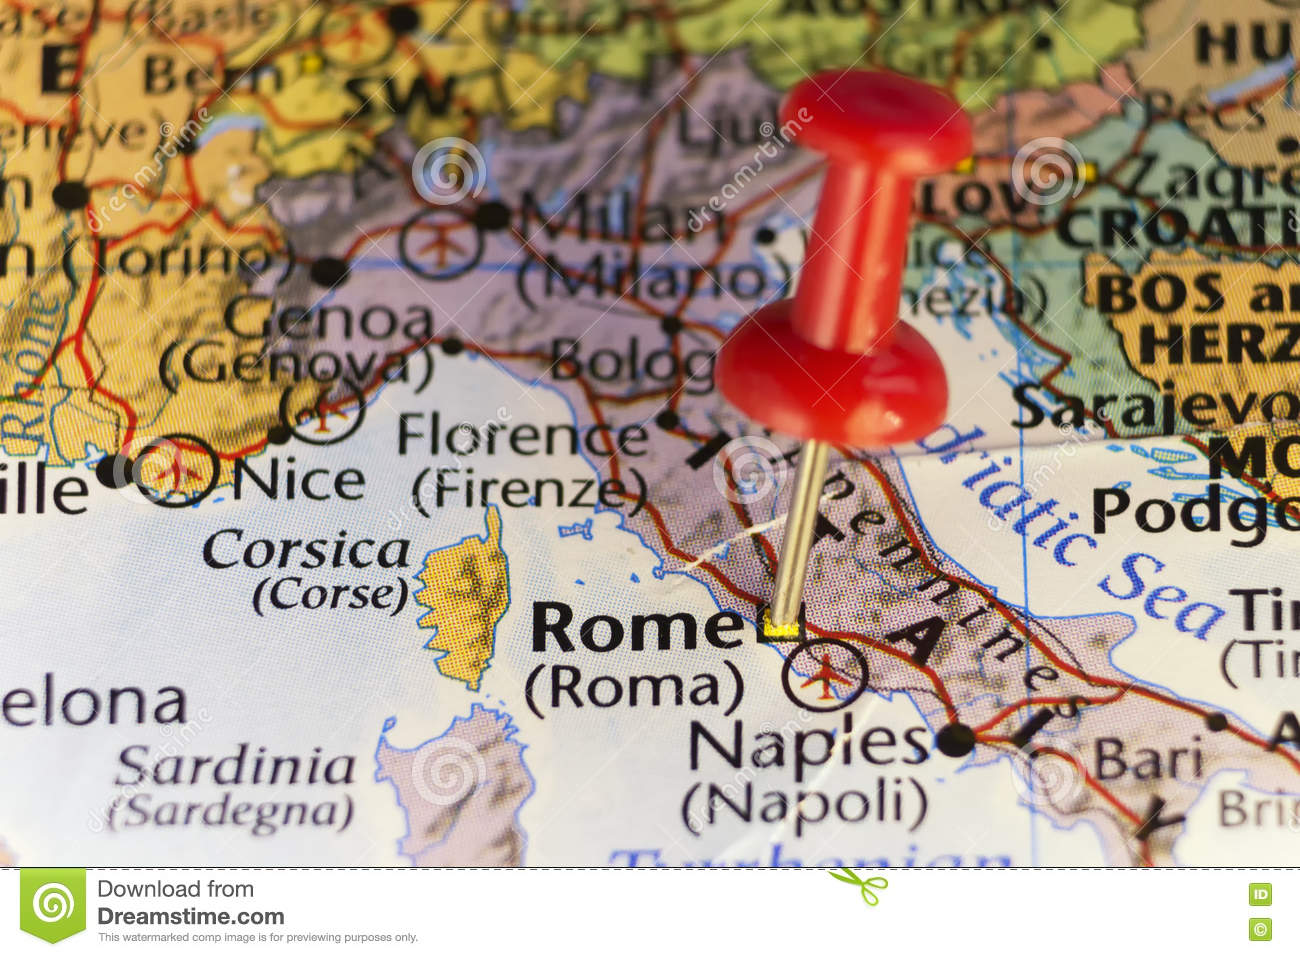 Download comp Destination Map Rome Italy Pinned